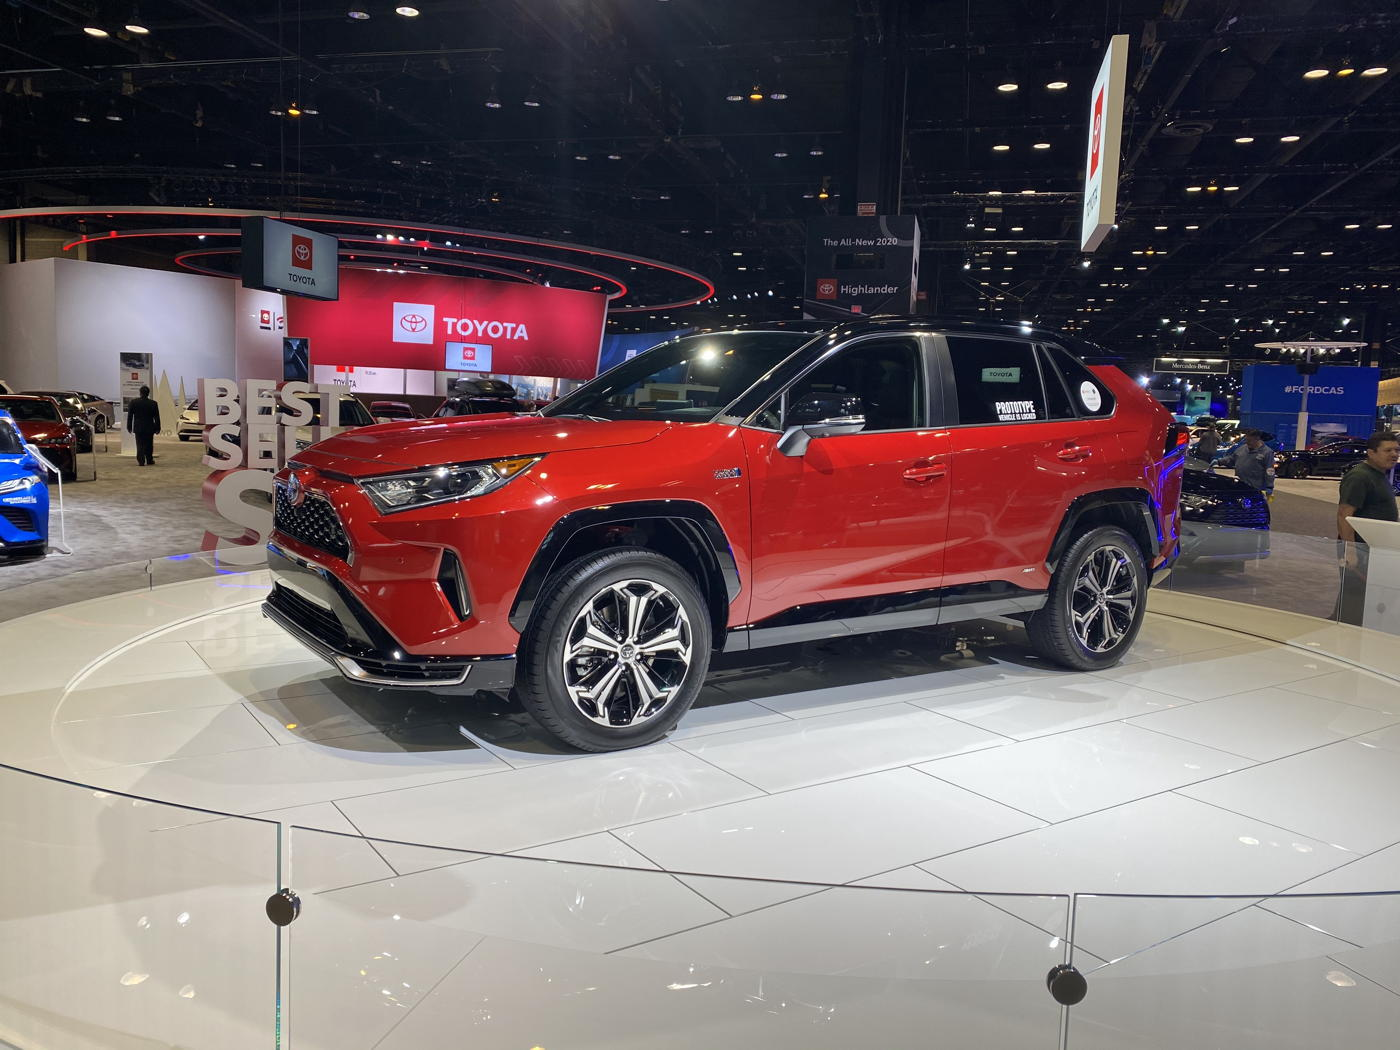 2021 Toyota Rav4 Prime at 2020 Chicago auto show.JPG